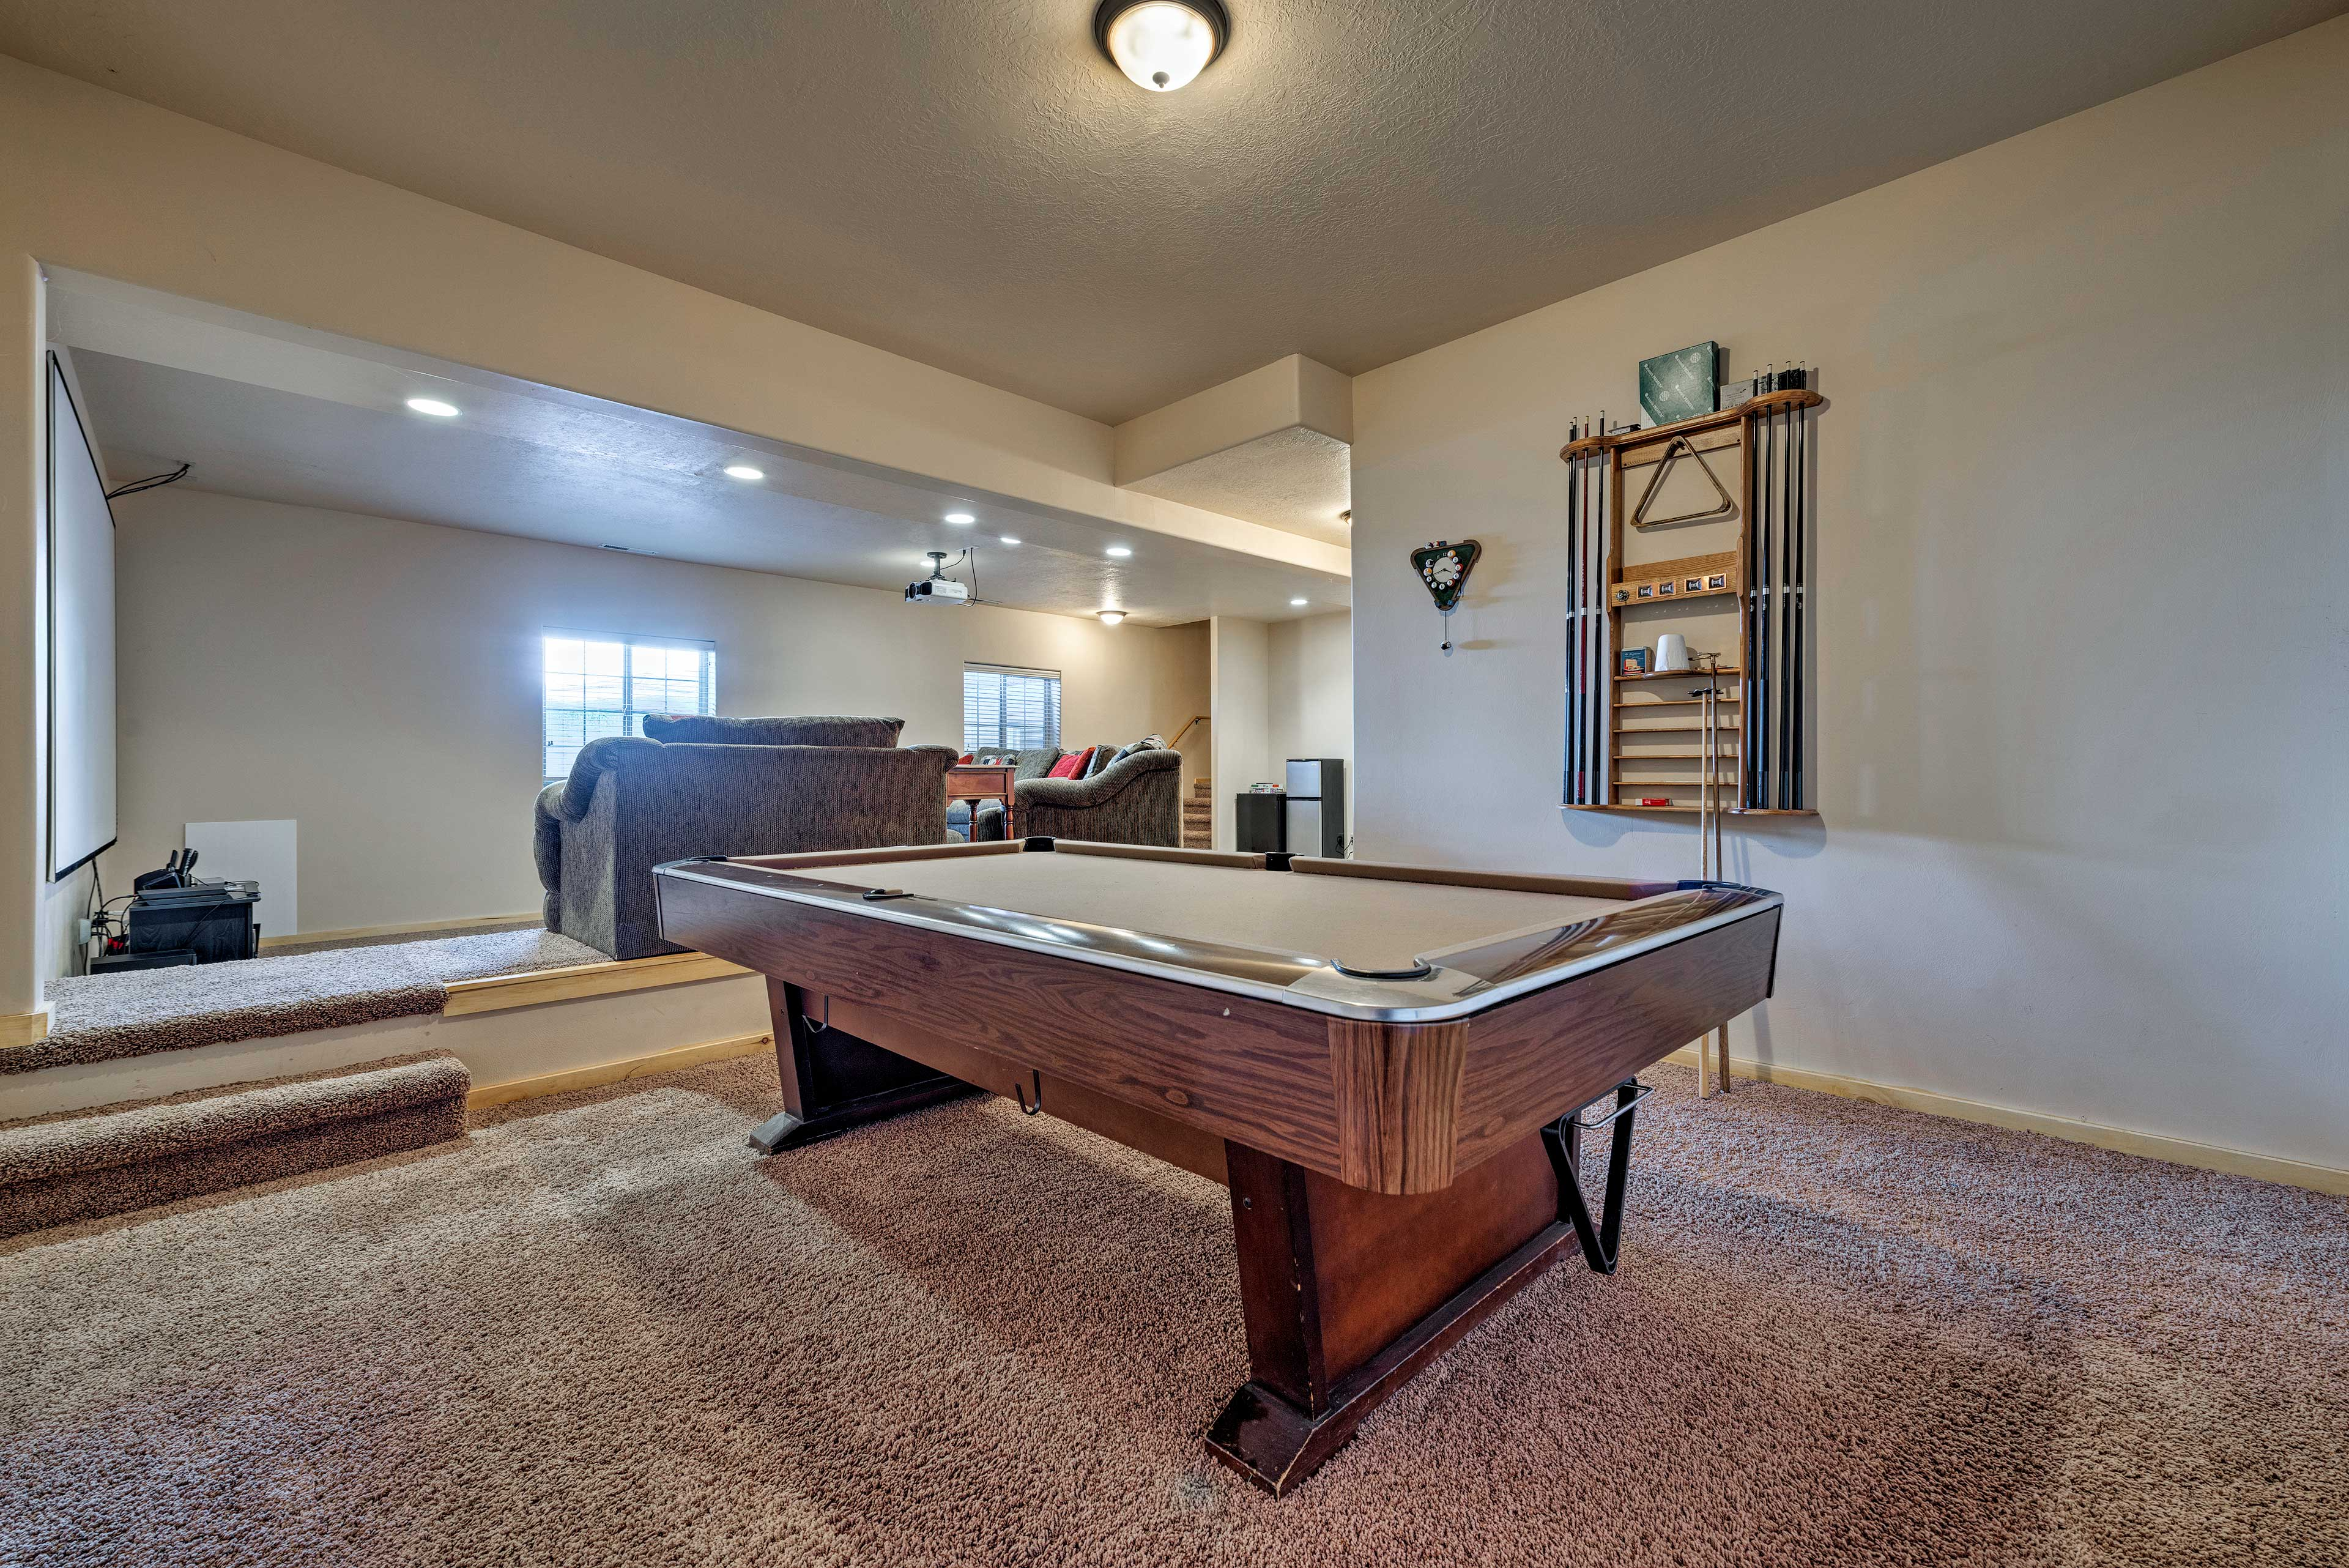 Host a pool tournament in the basement!